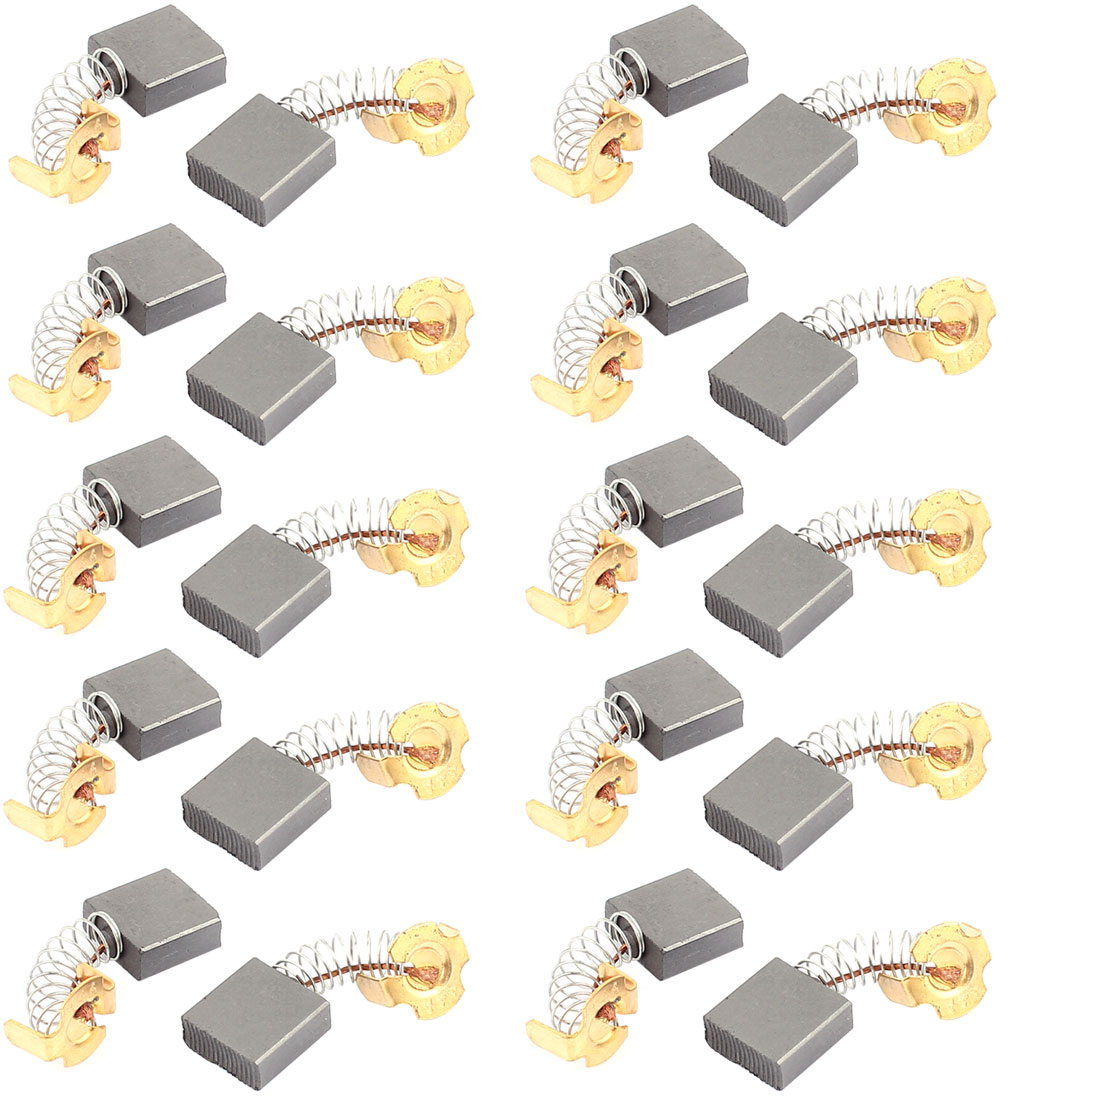 10 Pcs Replacement Electric Motor Carbon Brushes 17mm x 17mm x 7mm for Motors